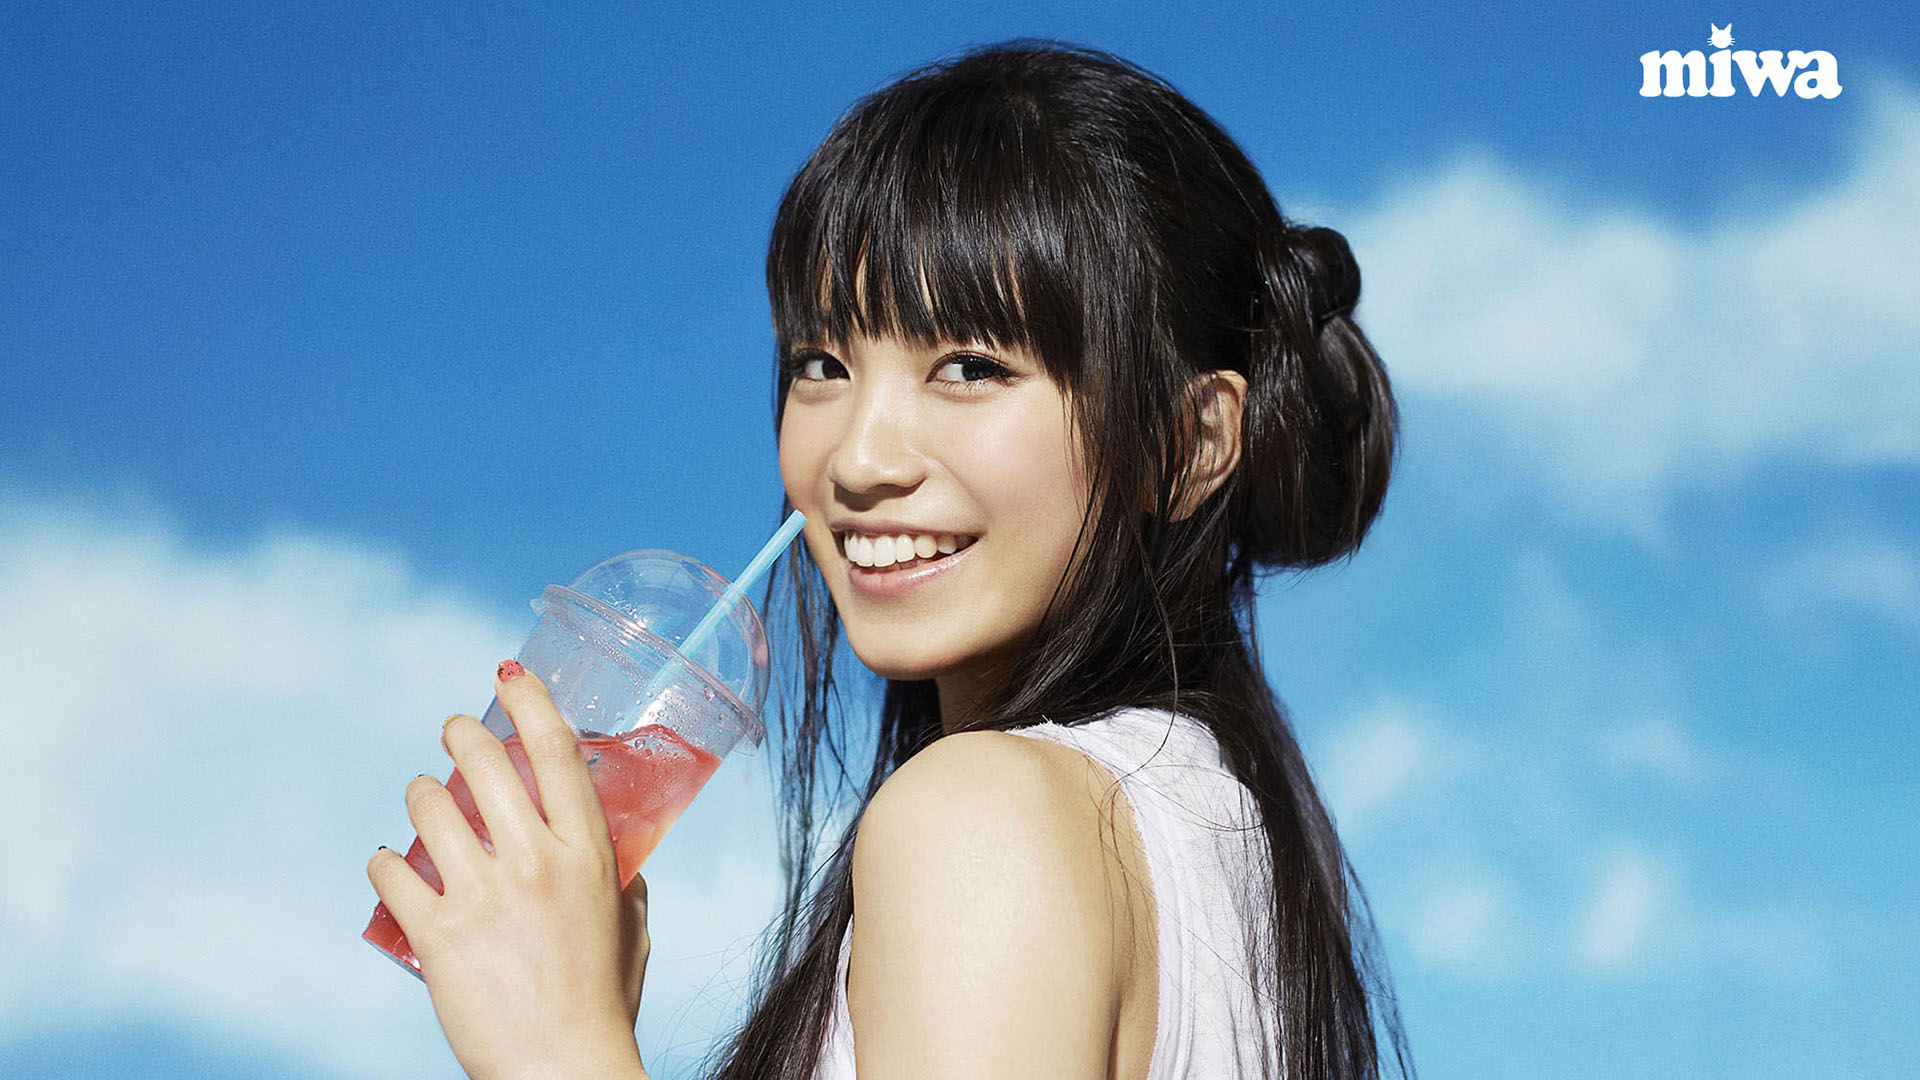 2 miwa hd wallpapers background images wallpaper abyss voltagebd Images